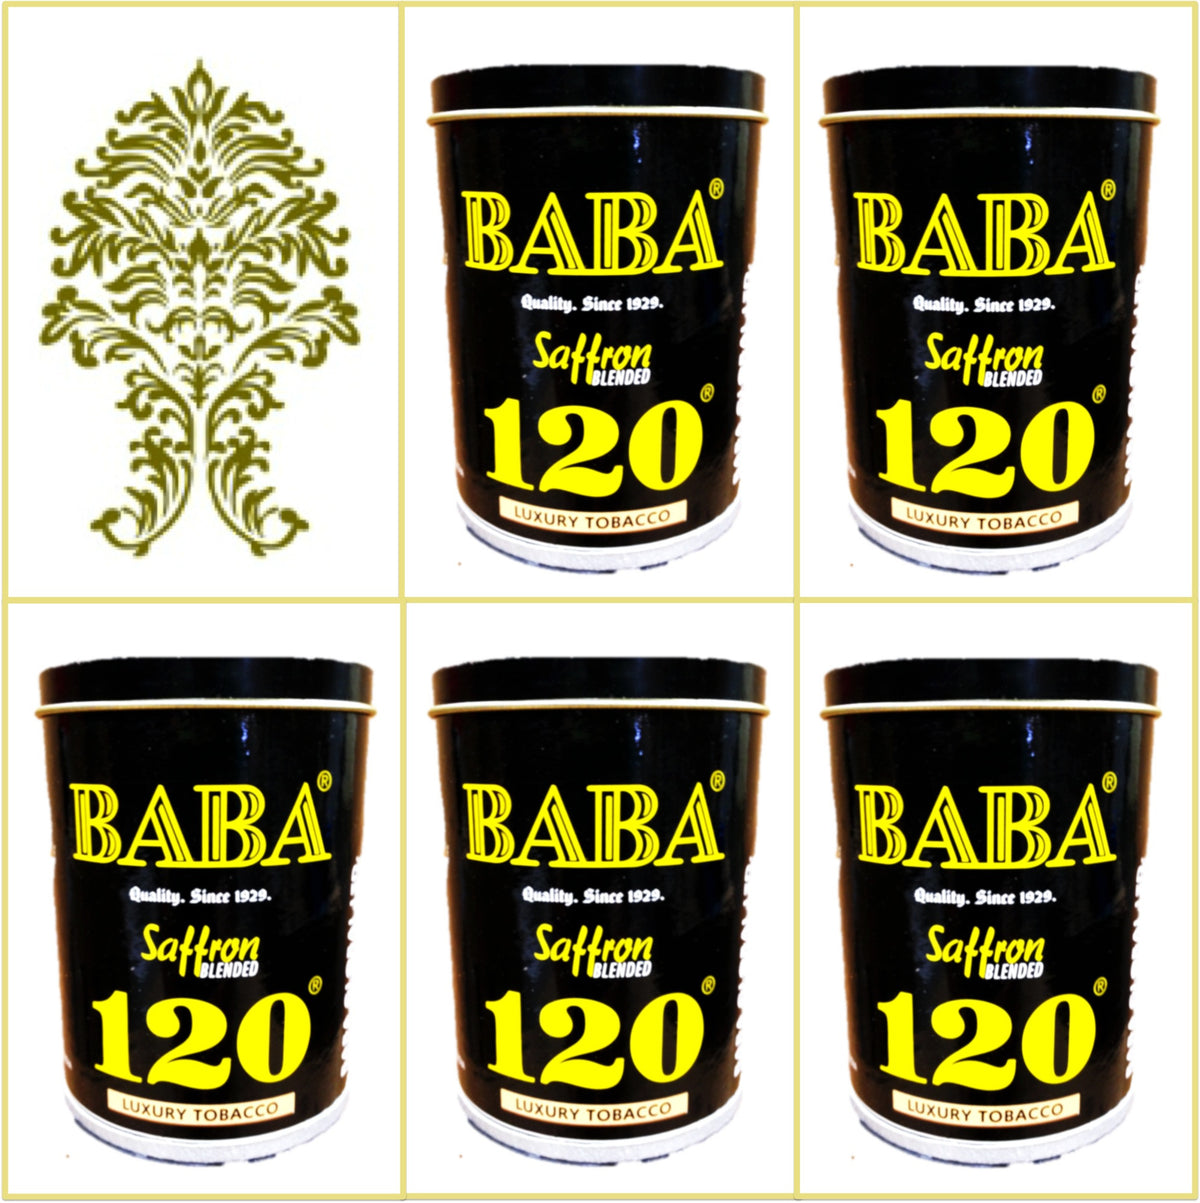 5 Cans Baba 120 Saffron Blended Luxury Tobacco 50g Each January 2020